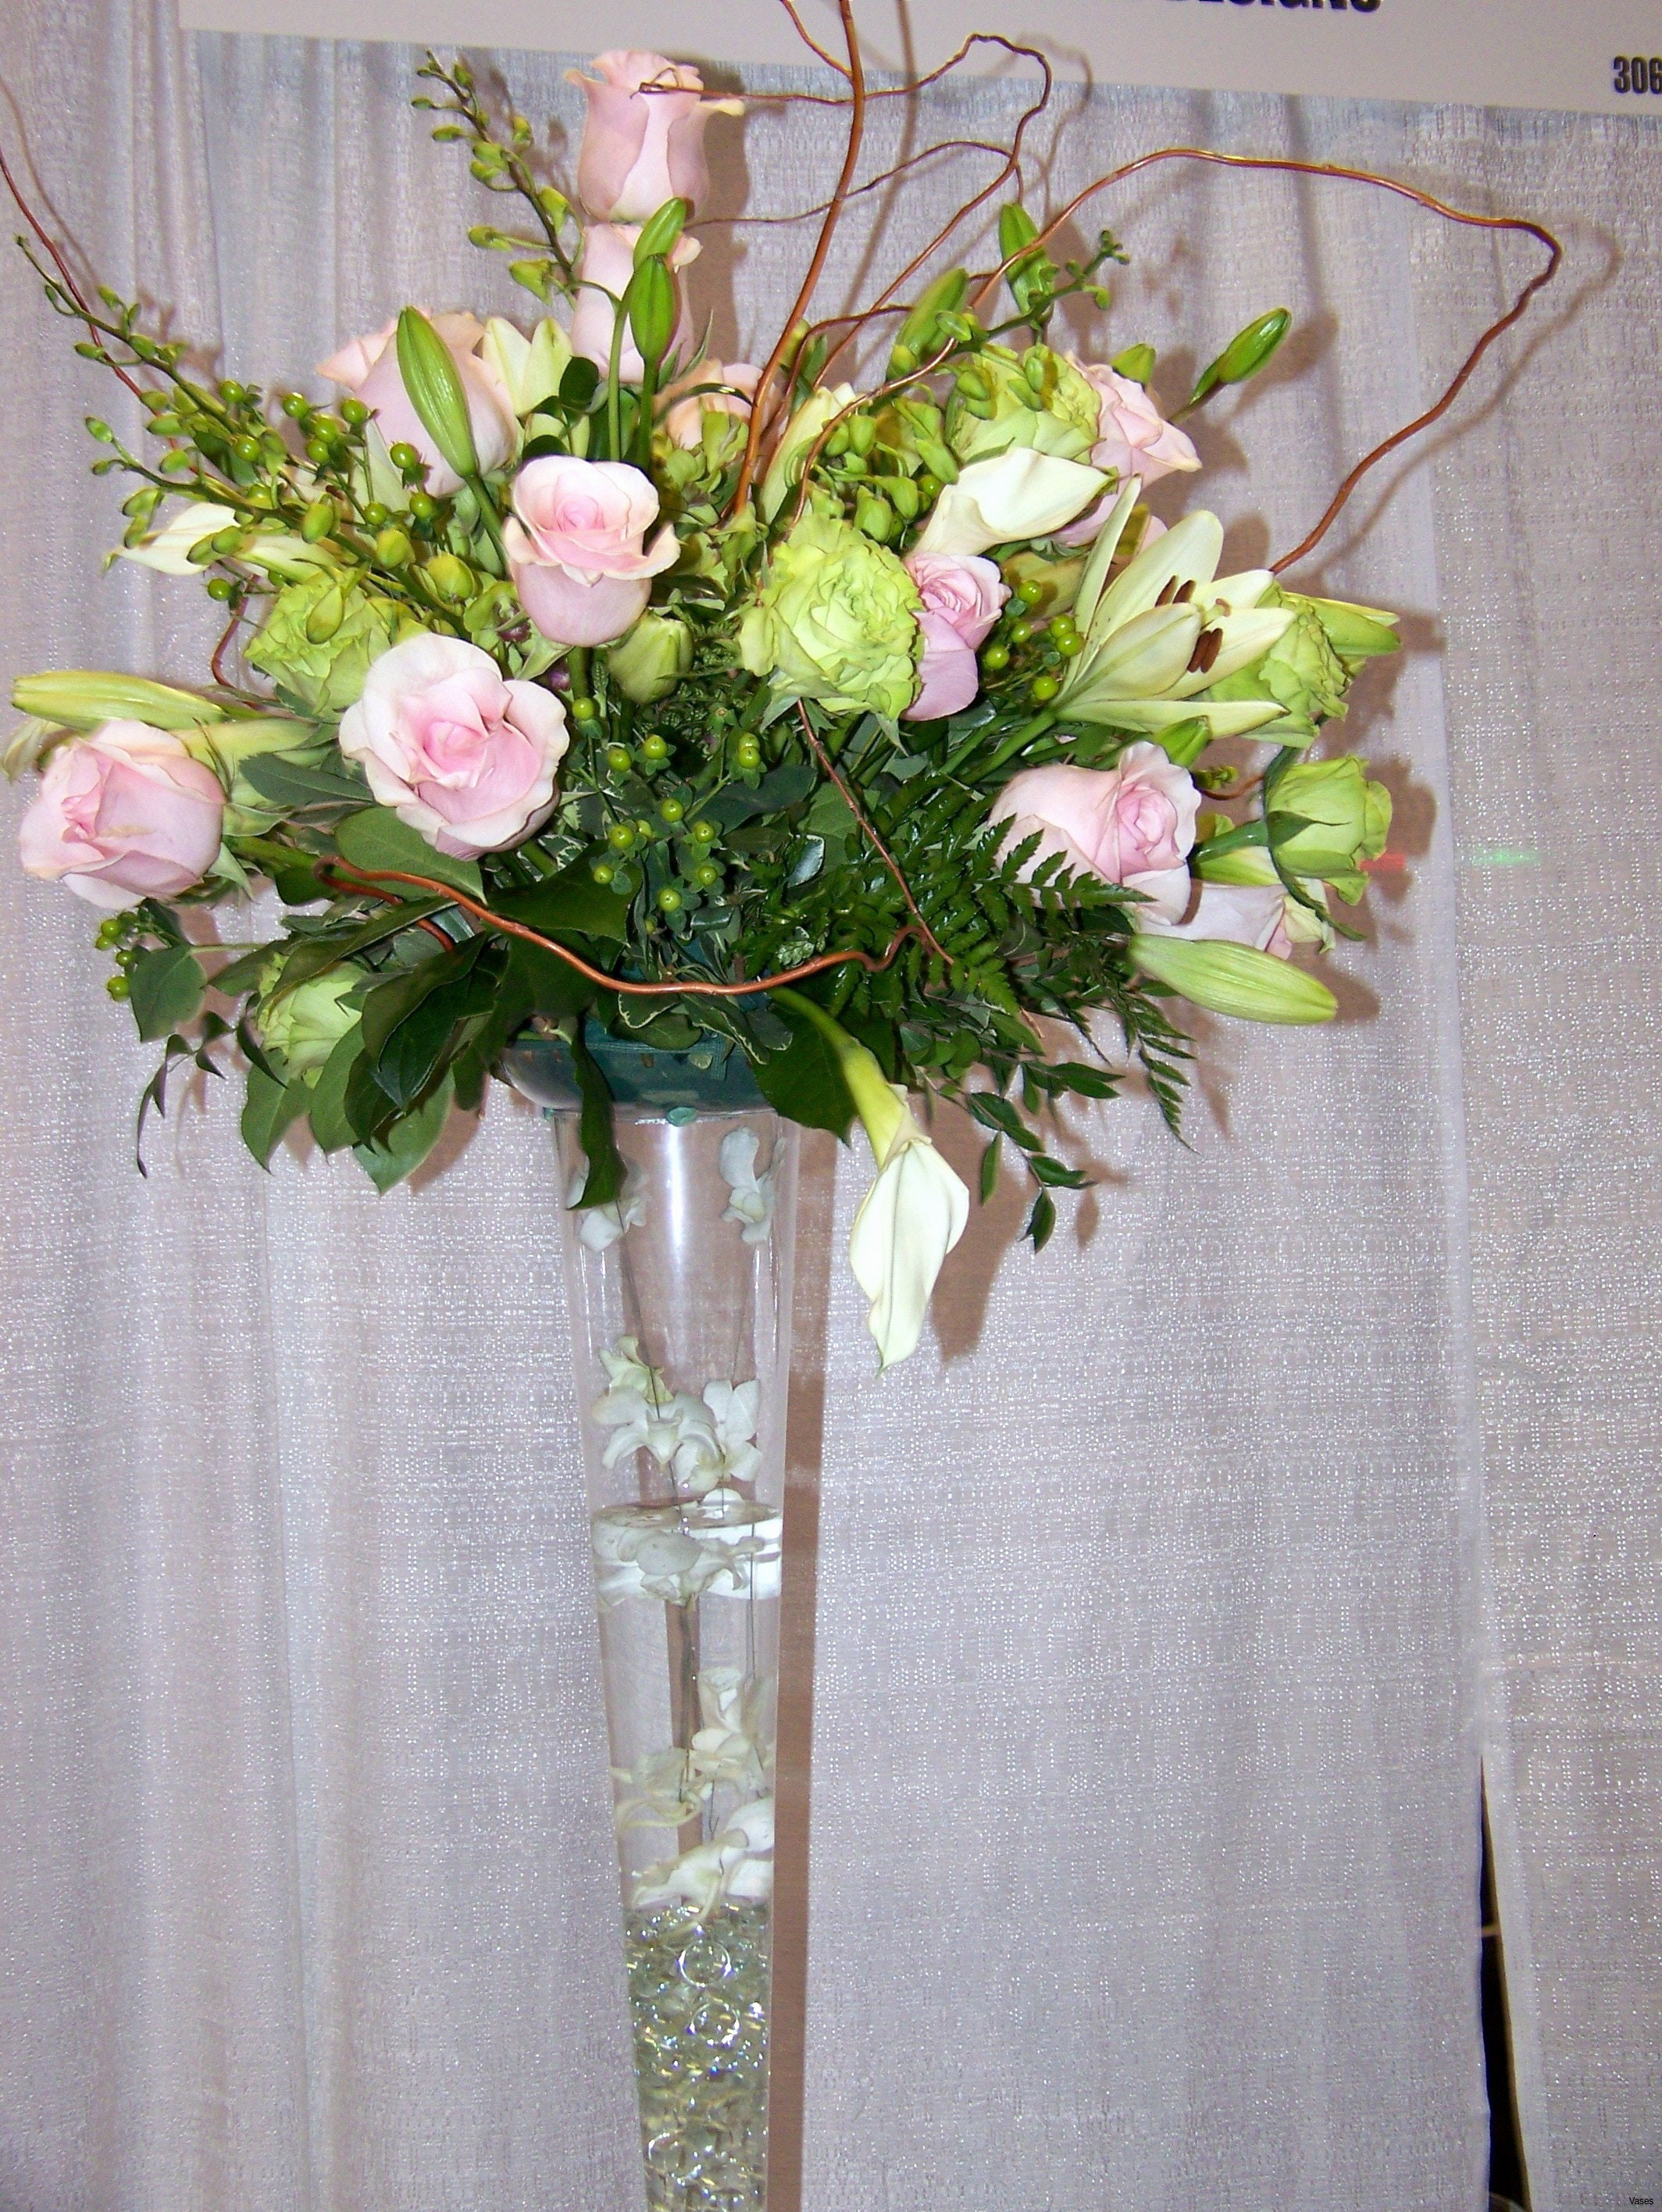 Cemetery Vases Metal Of What You Need for A Wedding New H Vases Ideas for Floral for What You Need for A Wedding New H Vases Ideas for Floral Arrangements In I 0d Design Ideas Design